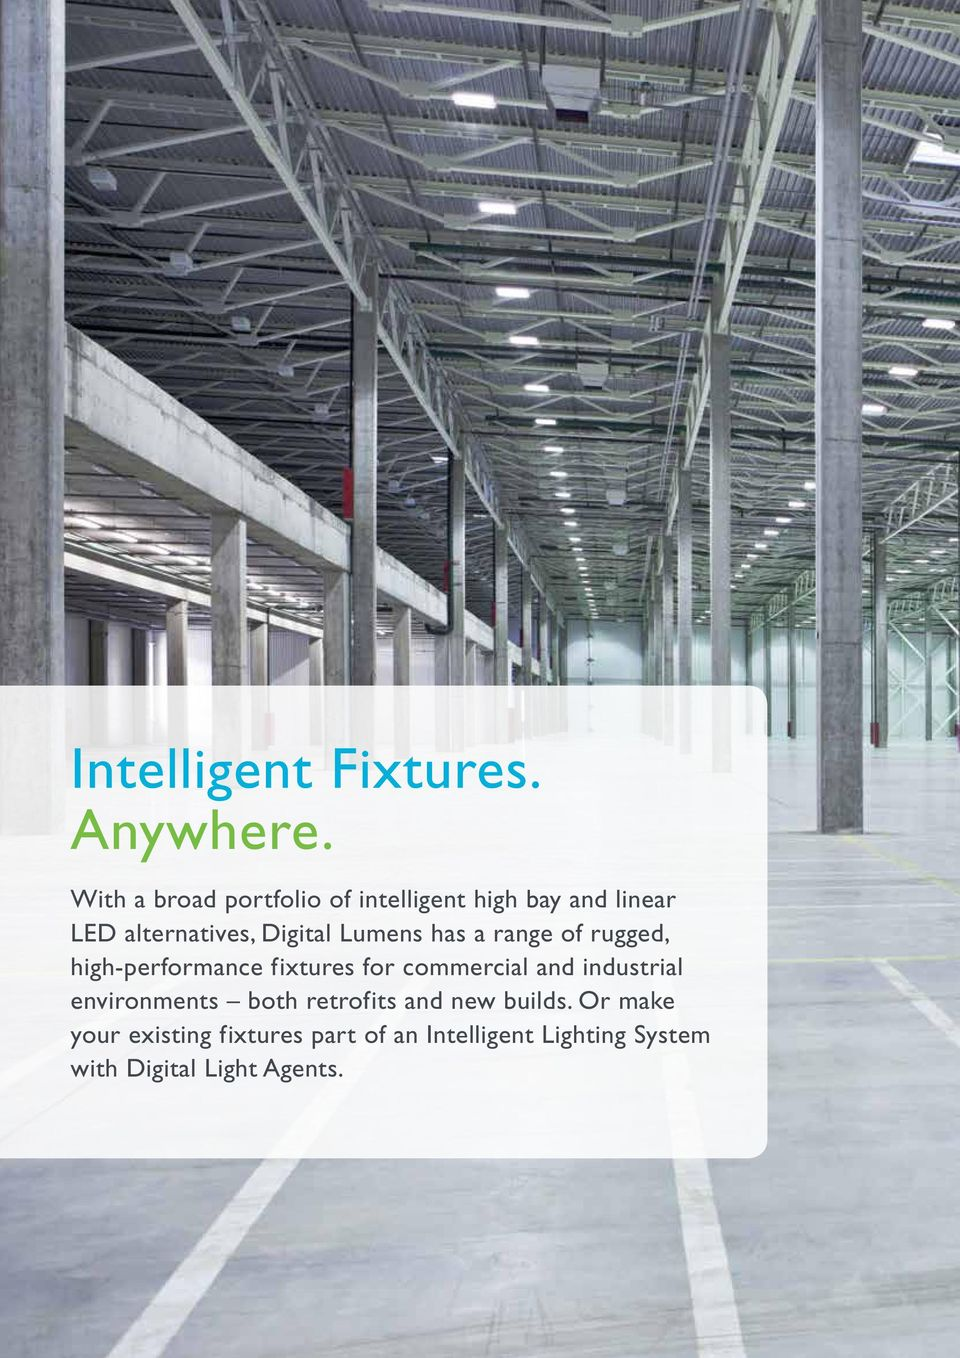 Lumens has a range of rugged, high-performance fixtures for commercial and industrial